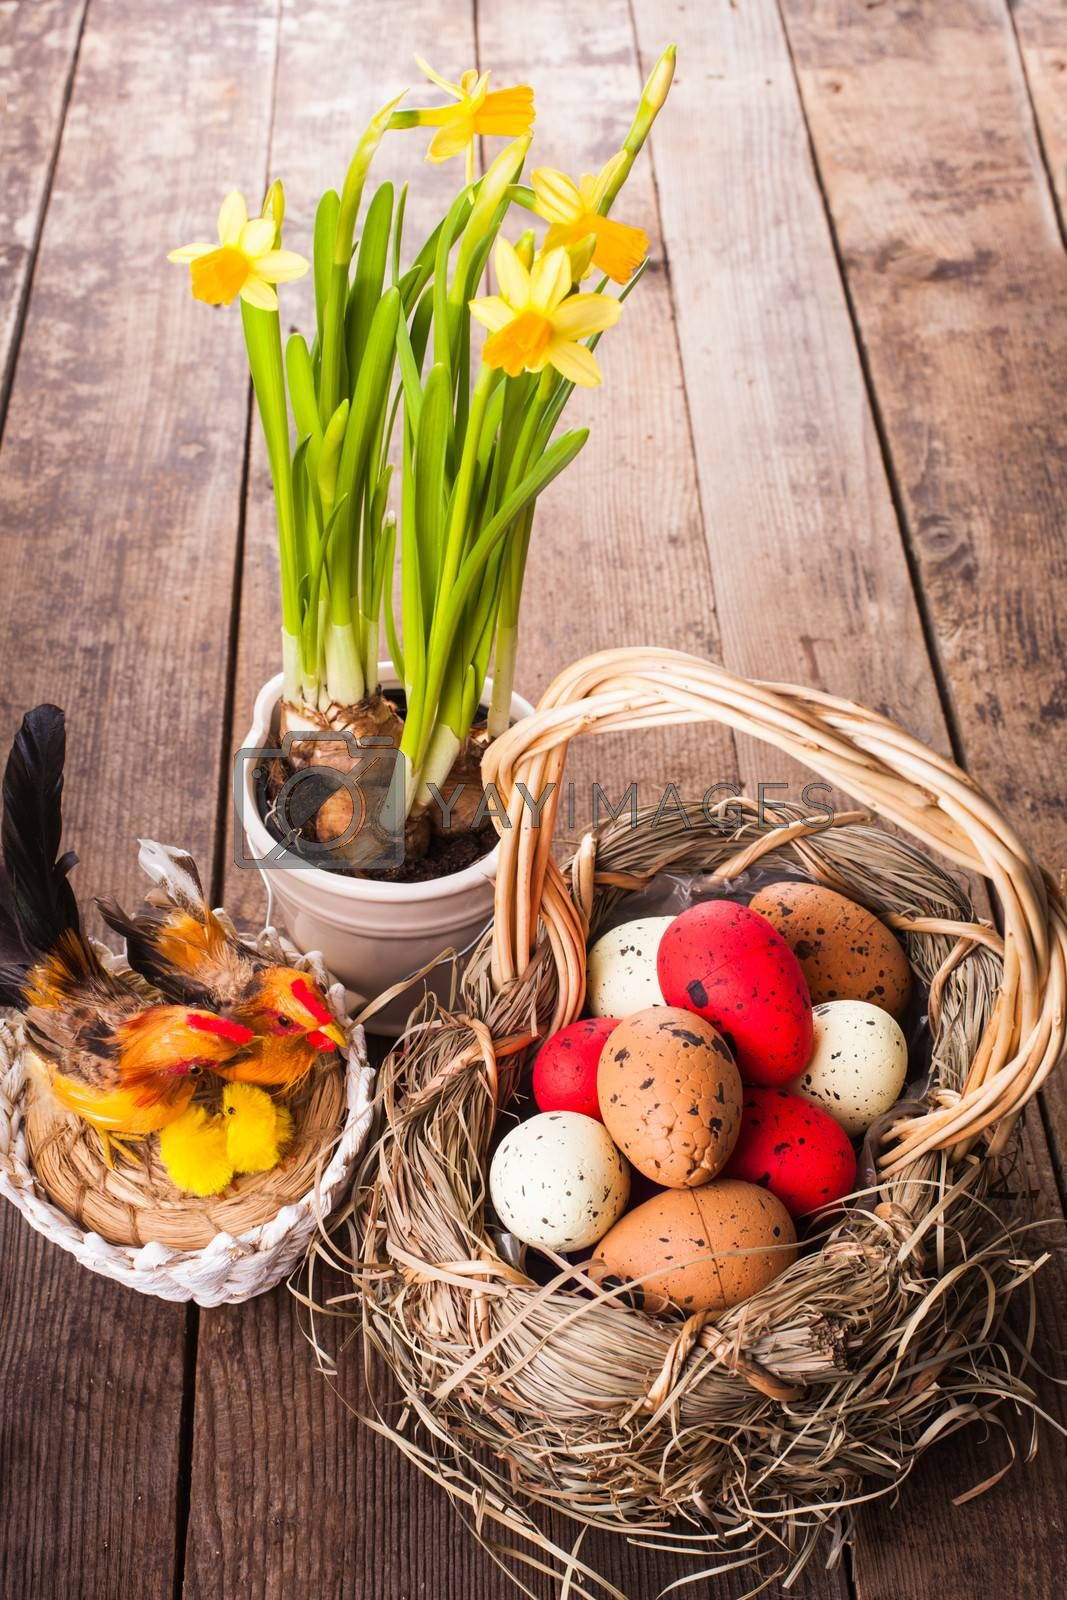 Brown, red and yellow eggs in basket, Easter decor